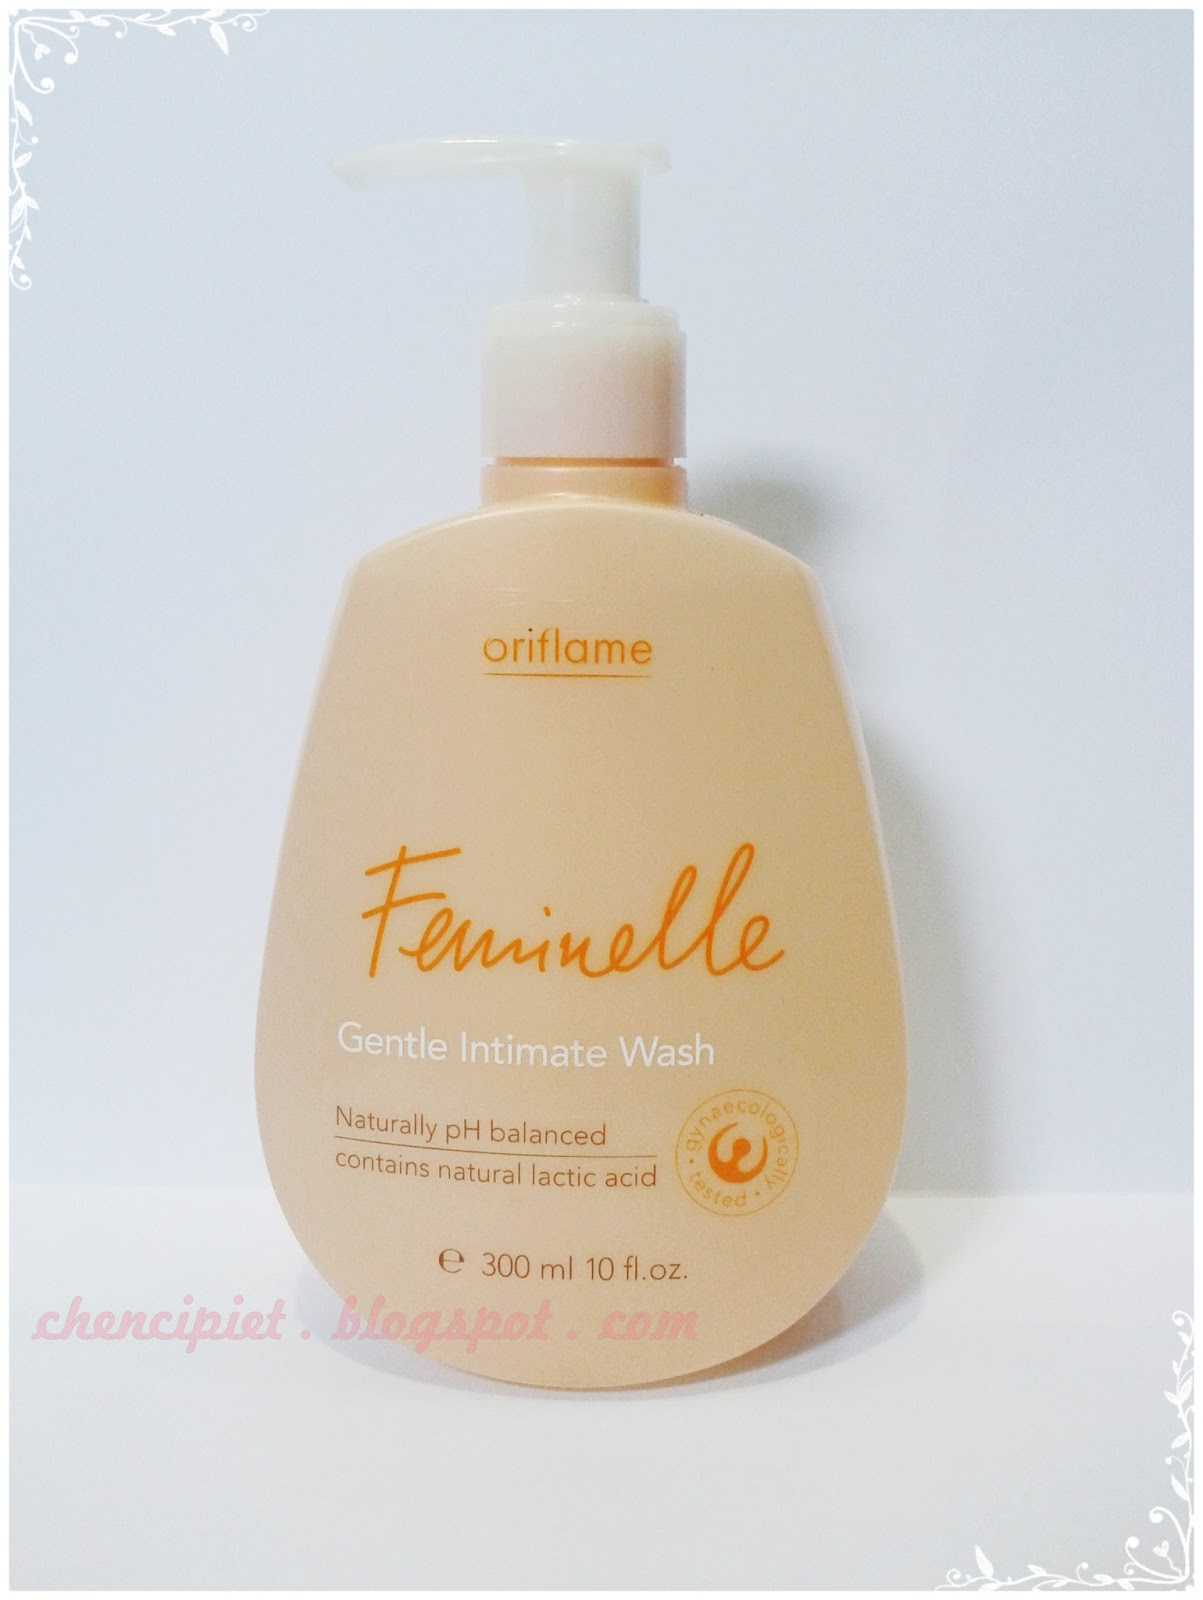 8d13dd5c12 chencipiet   review    Oriflame Feminelle Gentle Intimate Wash